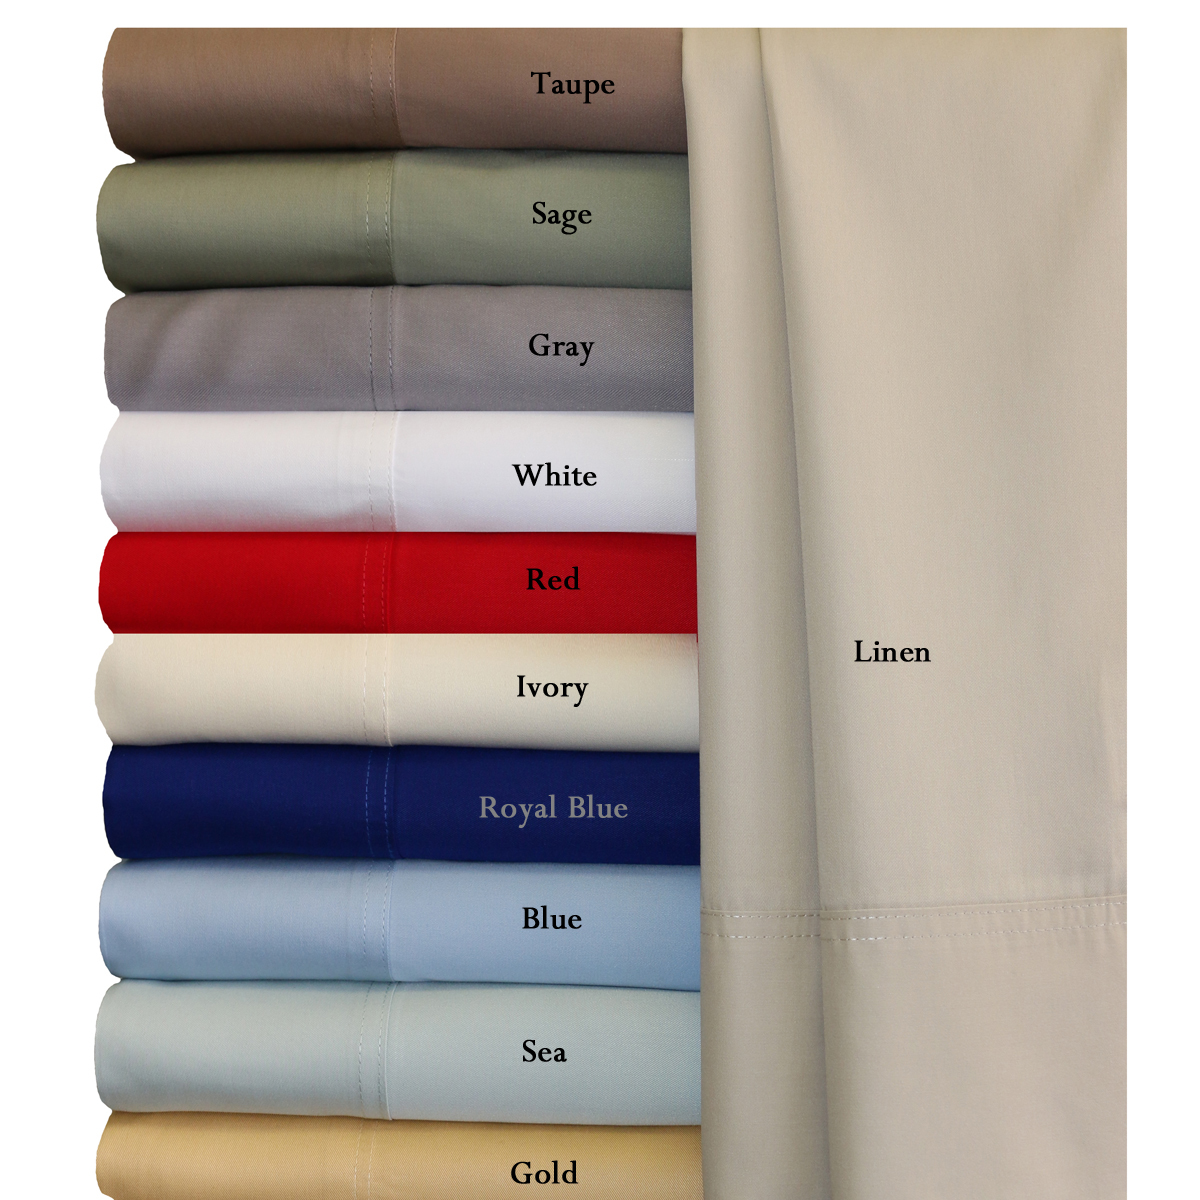 """Super Soft 100% Viscose from Bamboo Sheet Sets: Wrap your self in the softness of the luxurious 100% Rayon from Bamboo sheets like those found in royalty homes. You won't be able to go back to cotton sheets after trying these 100% Viscose from Bamboo sheets. Amazingly soft similar to cashmere of silk. 60% more absorbent than cotton. Sustainable, fast growth rate over 1 meter per day. Requires significantly less pesticides than cotton and is naturally irrigated. Natural anti-bacterial and deodorizing properties.*"""" Viscose from Bamboo """" or """" Rayon from Bamboo"""" are both interchangeable common terms used when referring the Bamboo fabric derivatives. Bamboo woods undergo additional process before the fibers are spun into yarns. Therefore, bamboo yarns are turned into a Viscose or Rayon than woven to create bamboo fabrics.* Bamboo is one of the fastest growing plants because of it's ability to absorb water and is thus a very environmentally friendly material. These are the """" Greenest Sheets"""" around. This explain why bamboo sheets wick so much water away from the body, keeping people dry and comfortable. Machine wash in cold water.Delicate cycle with mild detergent. No Bleach. Tumble Dry on low heat. Remove immediately at end of cycle. Press with warm iron if needed. Do not Use Hot water."""